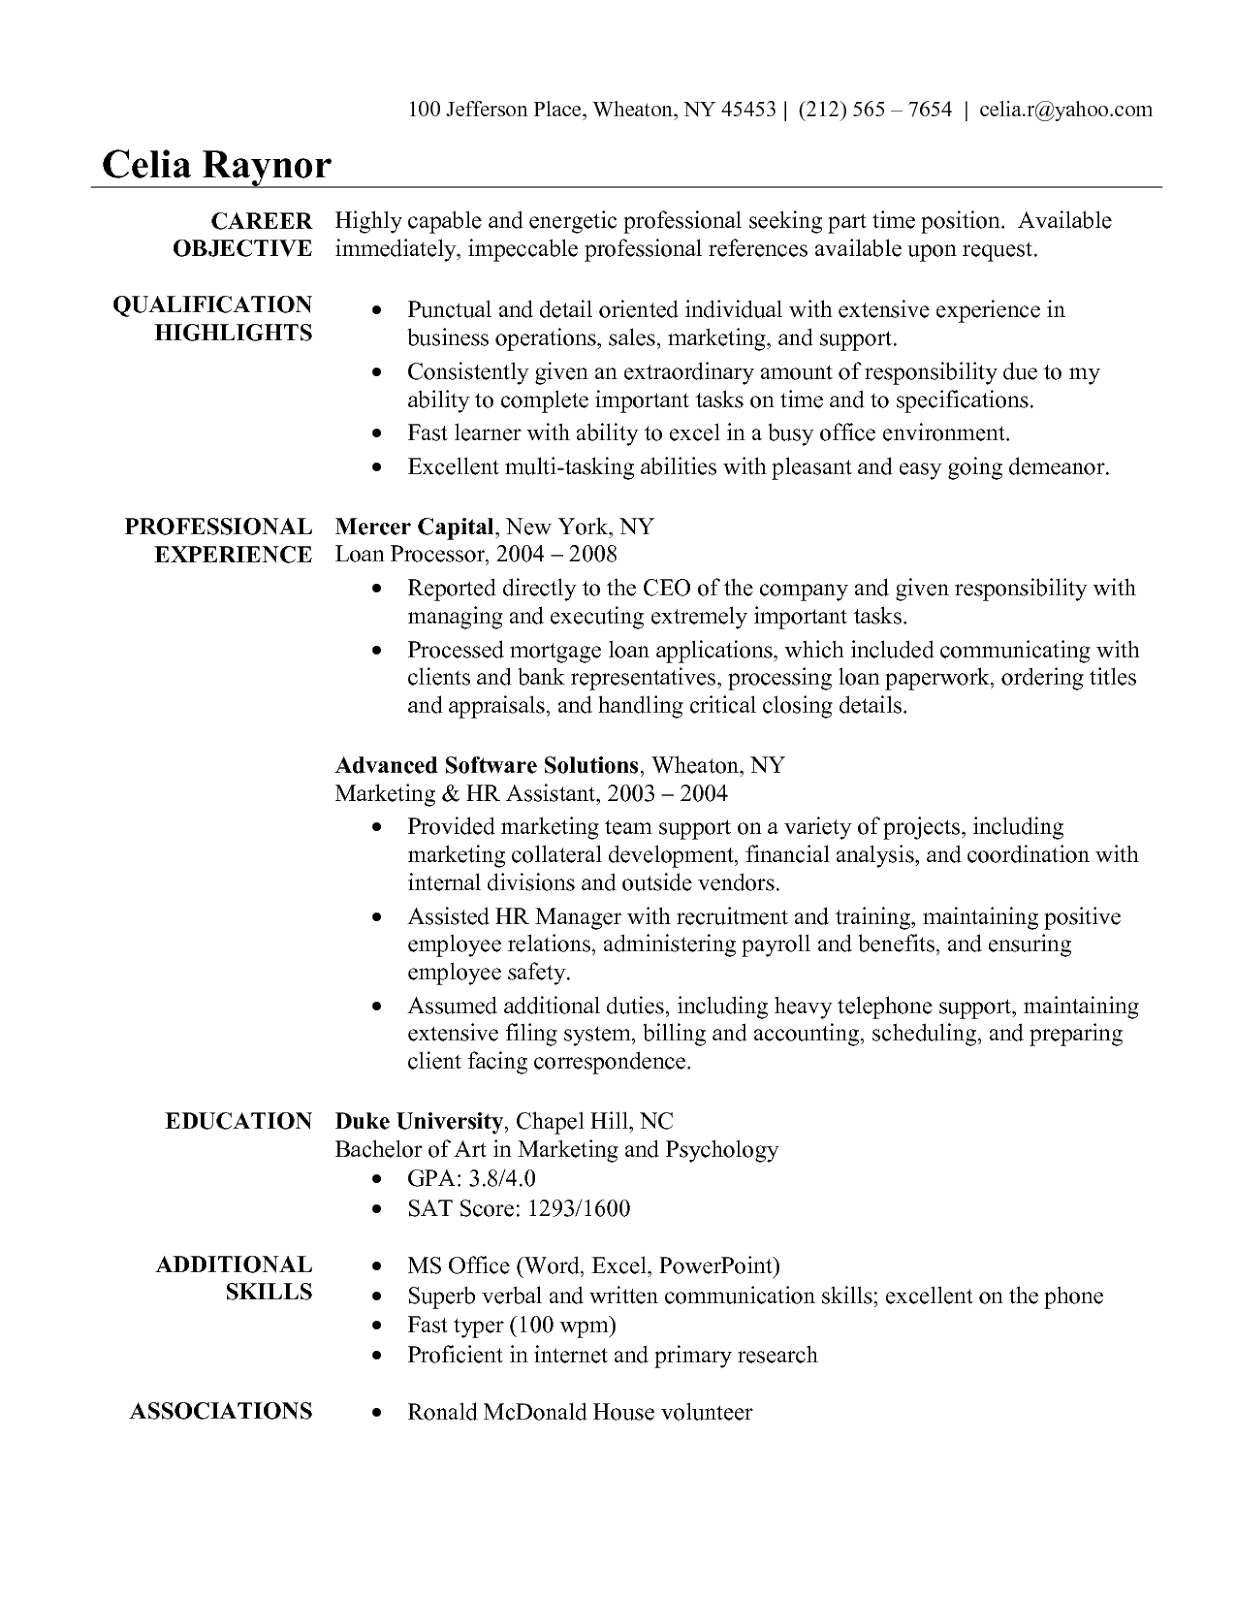 Objective Resume Sample Matchboardco - What to put as objective on resume